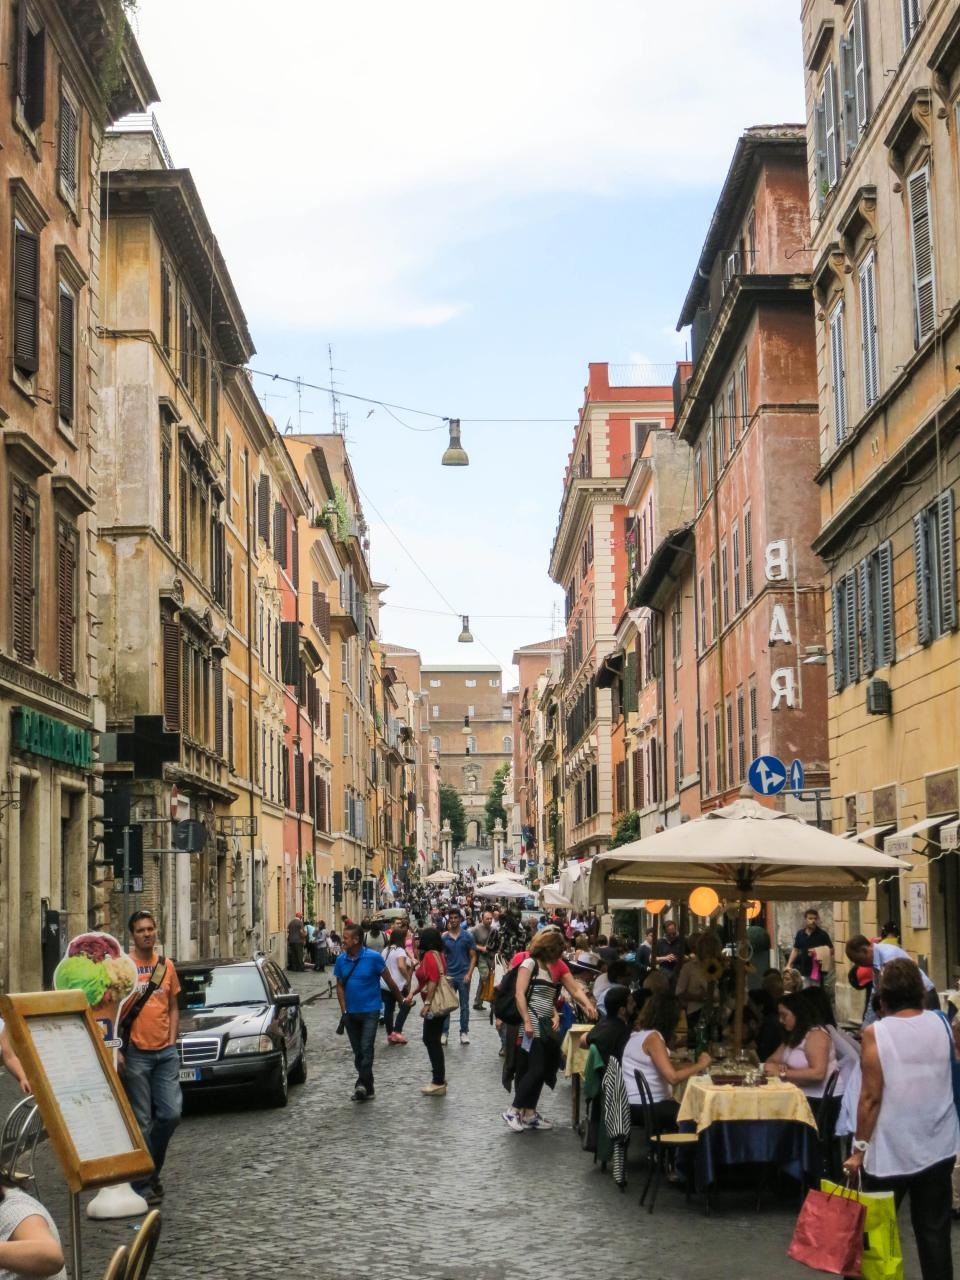 Rome Italy city streets cobblestone people pedestrians restaurants eating buildings houses apartments architecture crowd